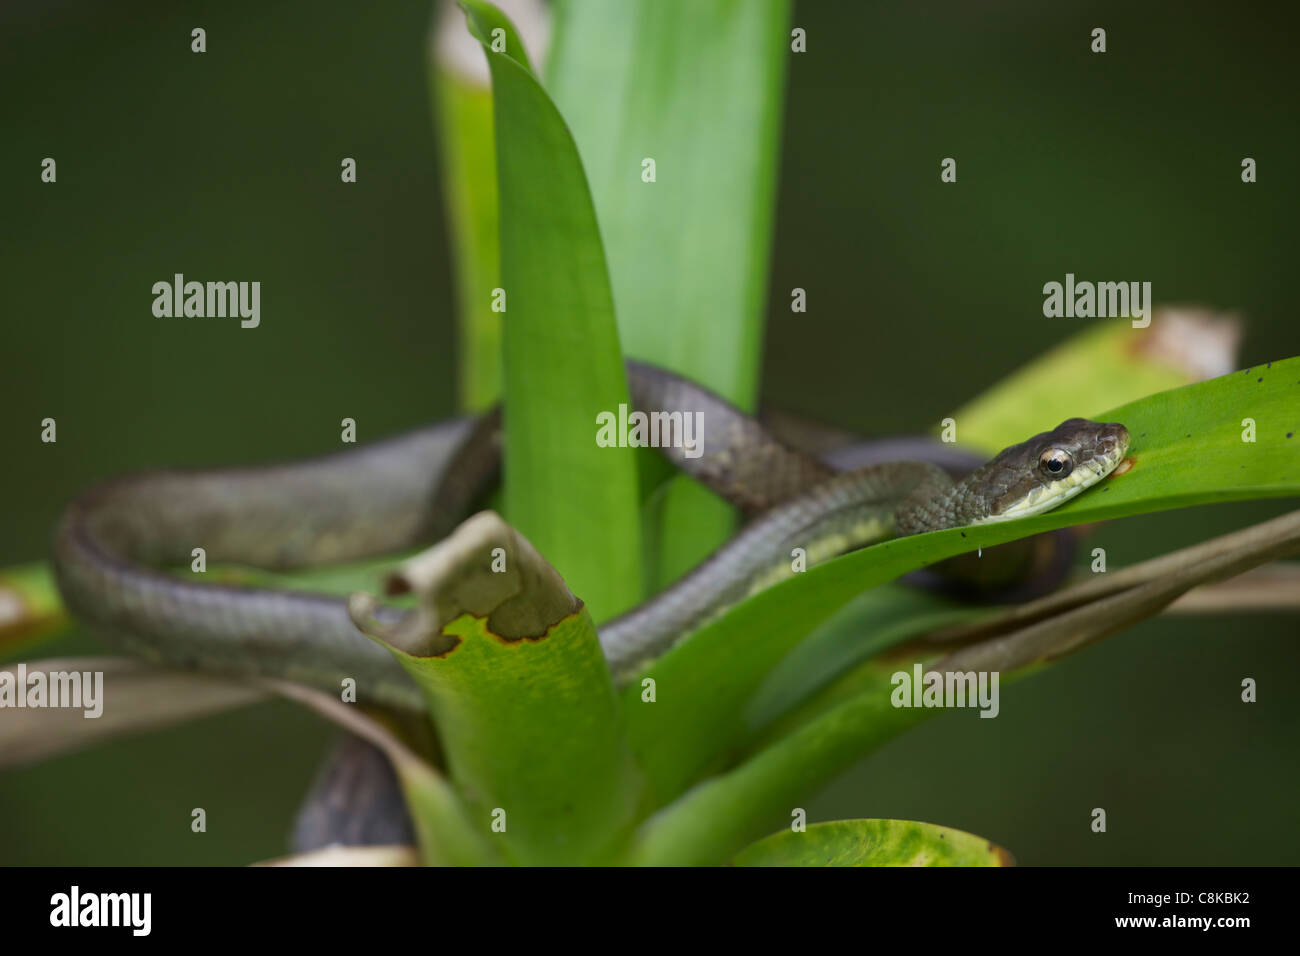 Salmon-bellied Racer - (Mastigodryas melanolomus) - Costa Rica - tropical rainforest - non-venomous  - Stock Image